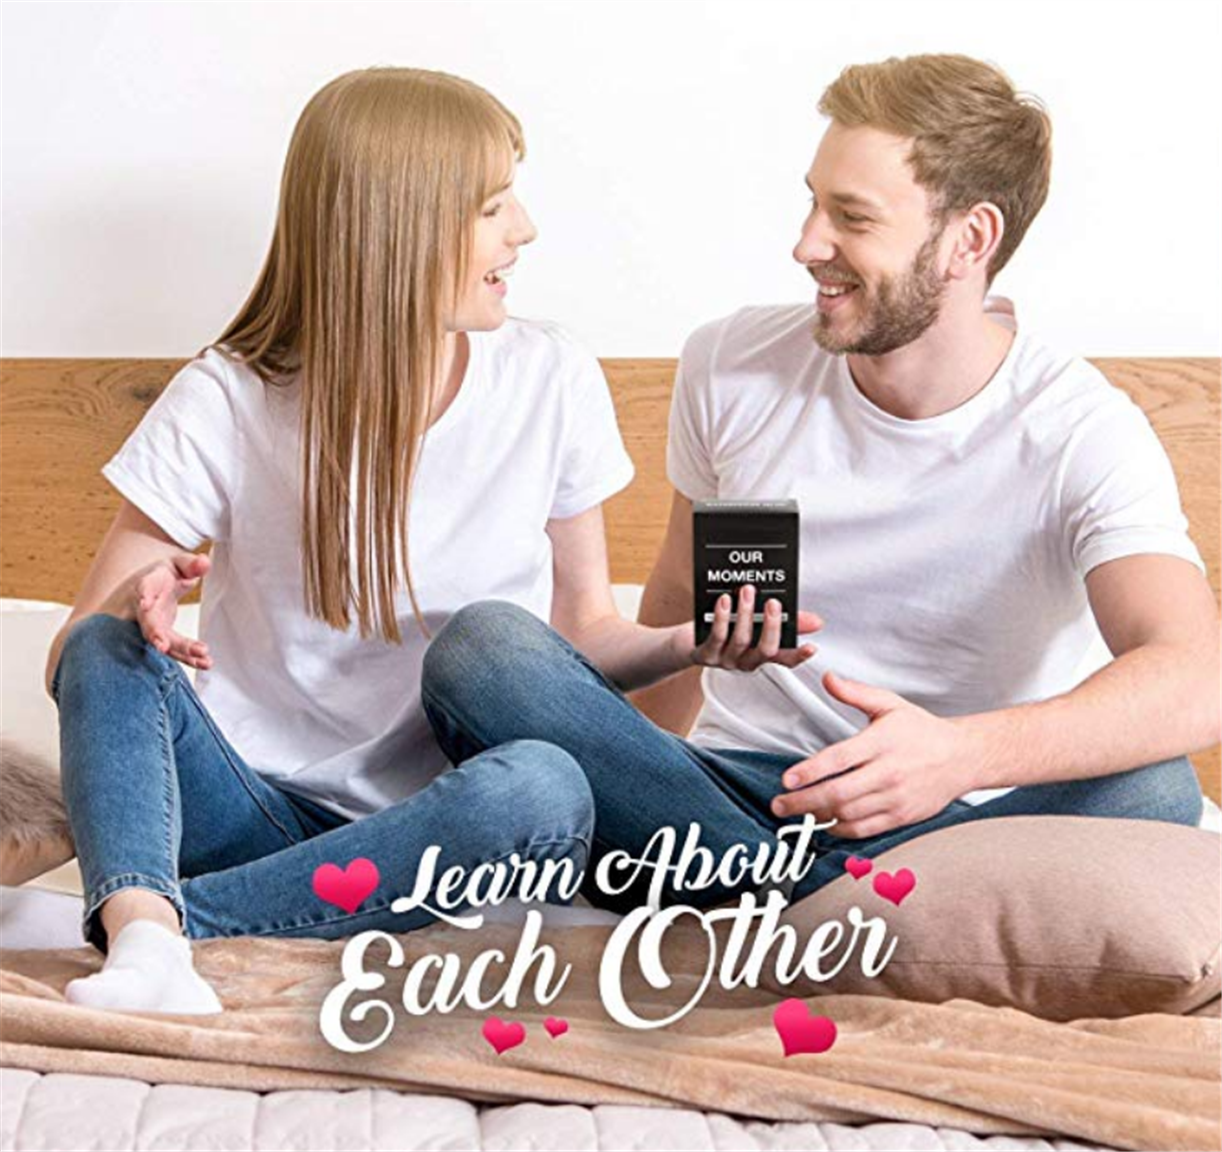 Our Moments Couples Game (Fun Conversation Card Game for Couples) Only $20.85! GREAT VALENTINE'S DAY GIFT!